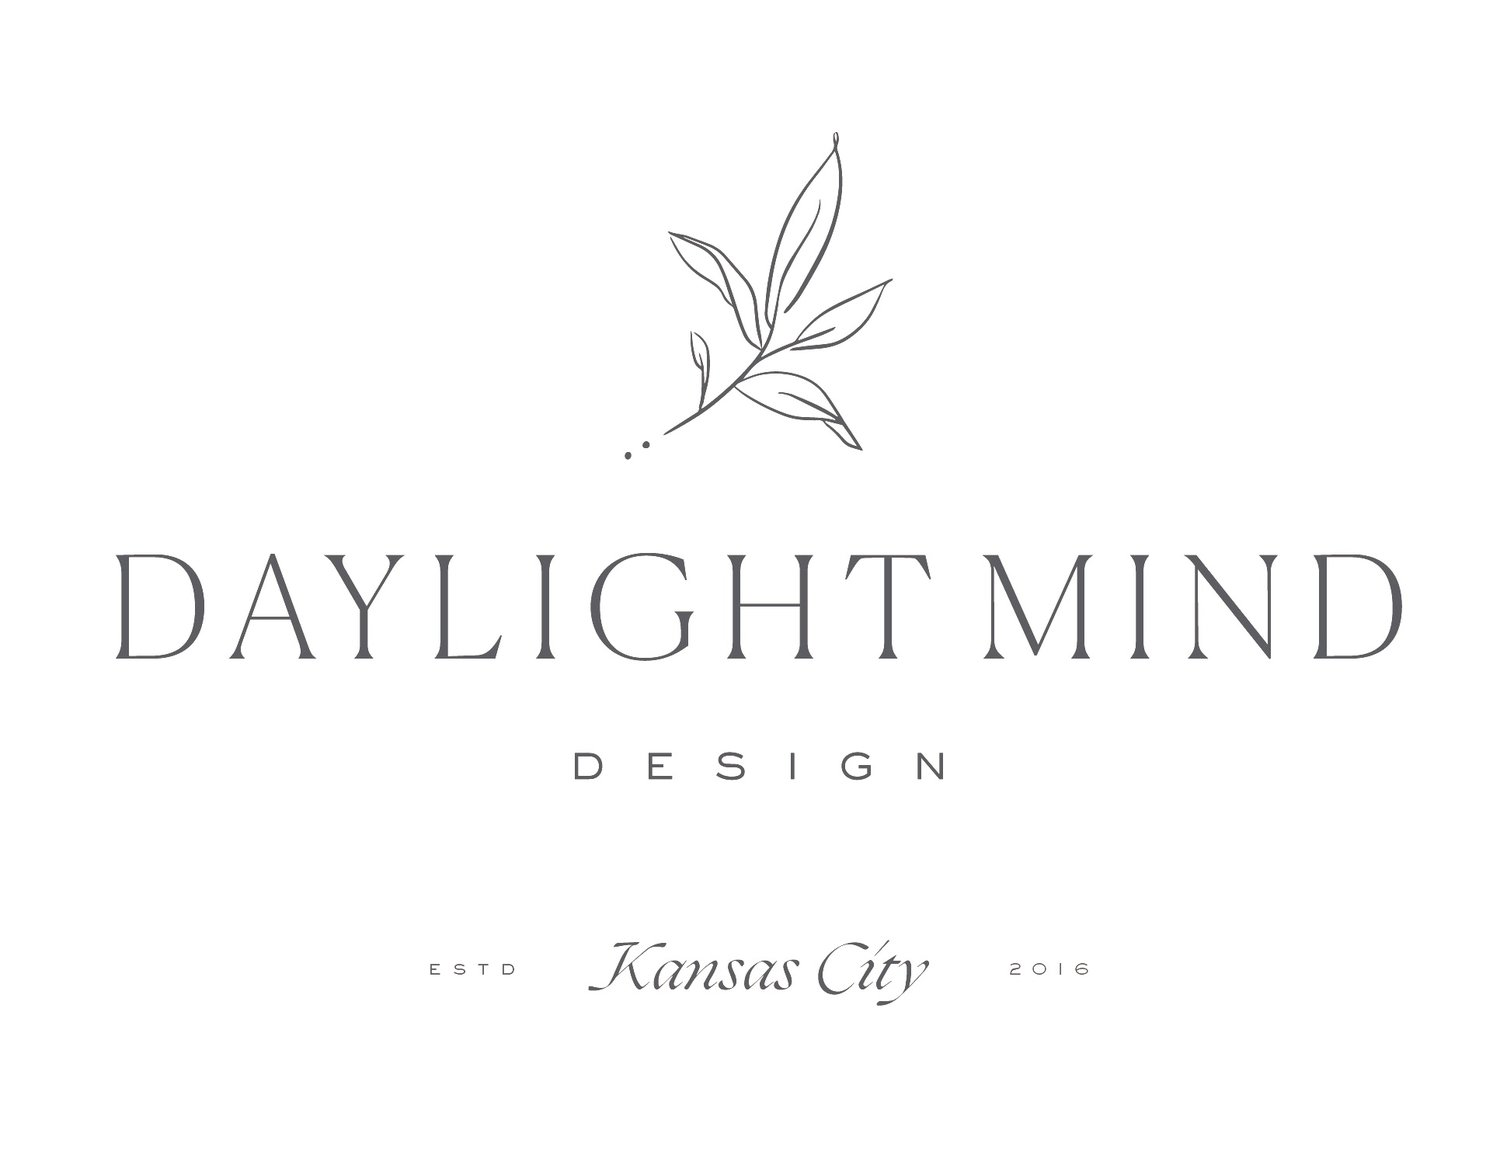 DAYLIGHT MIND DESIGN